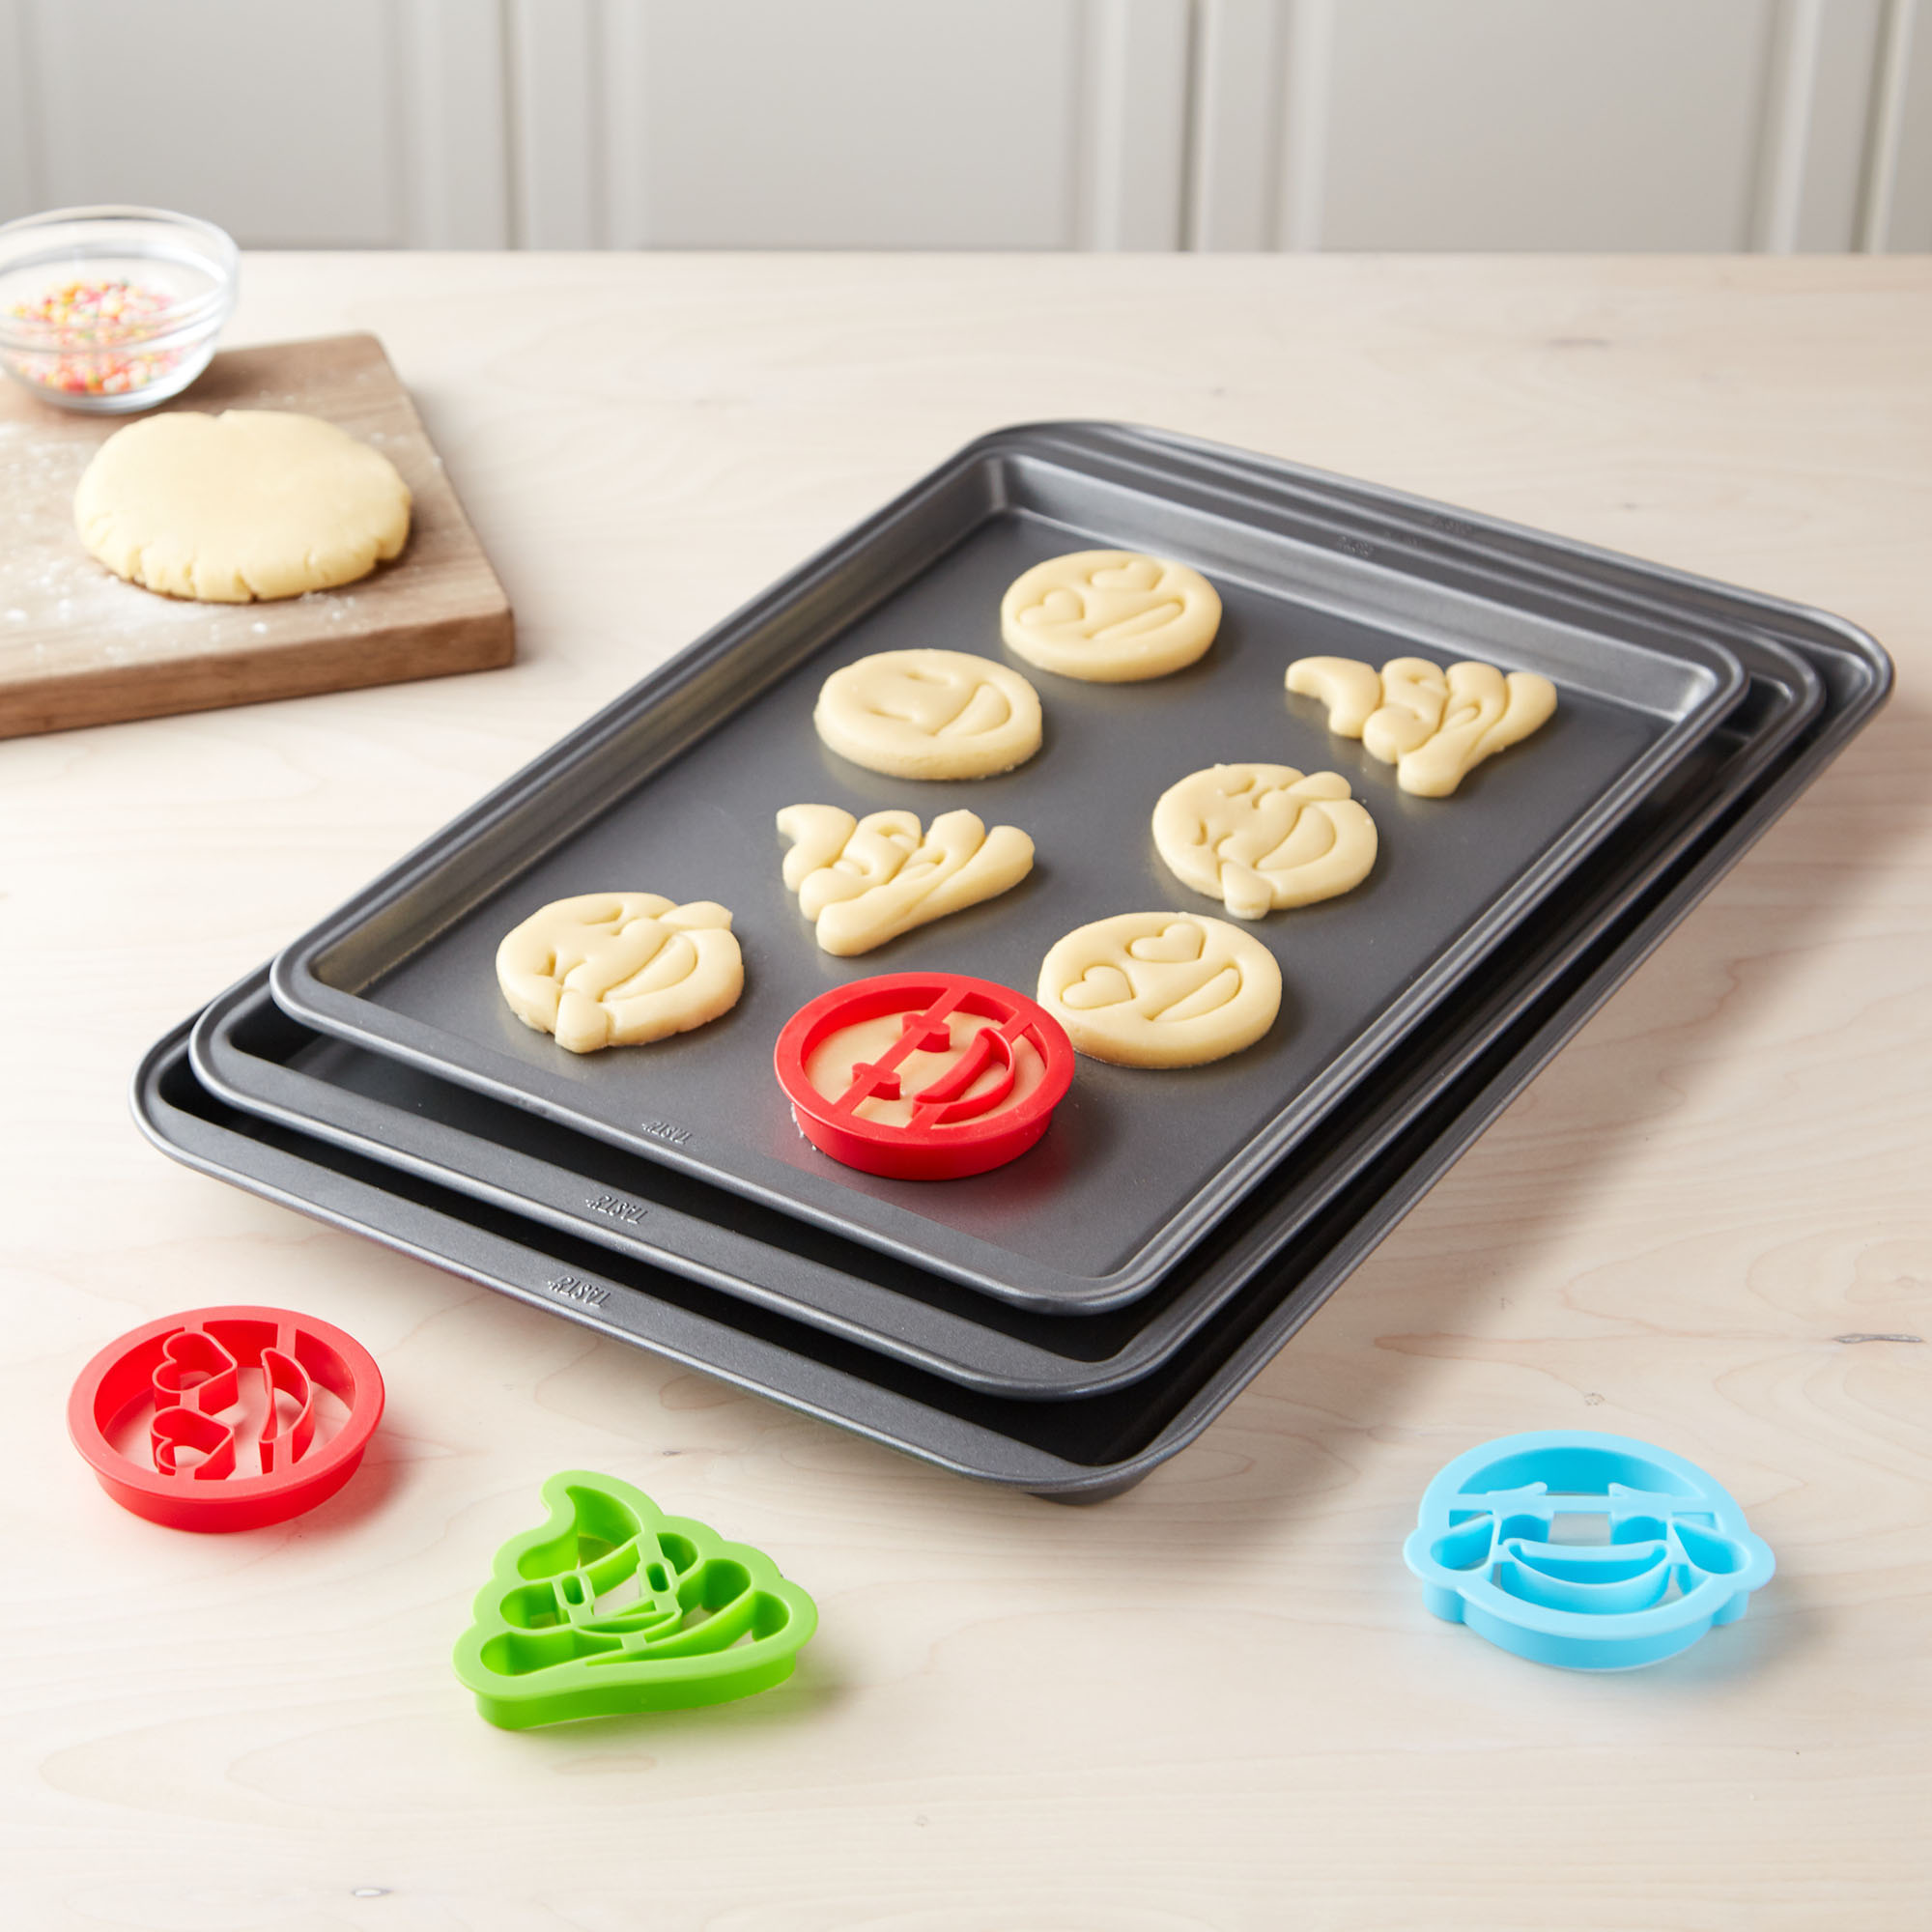 Tasty 3pc Cookie Sheet Set with 4 Cookie Cutters